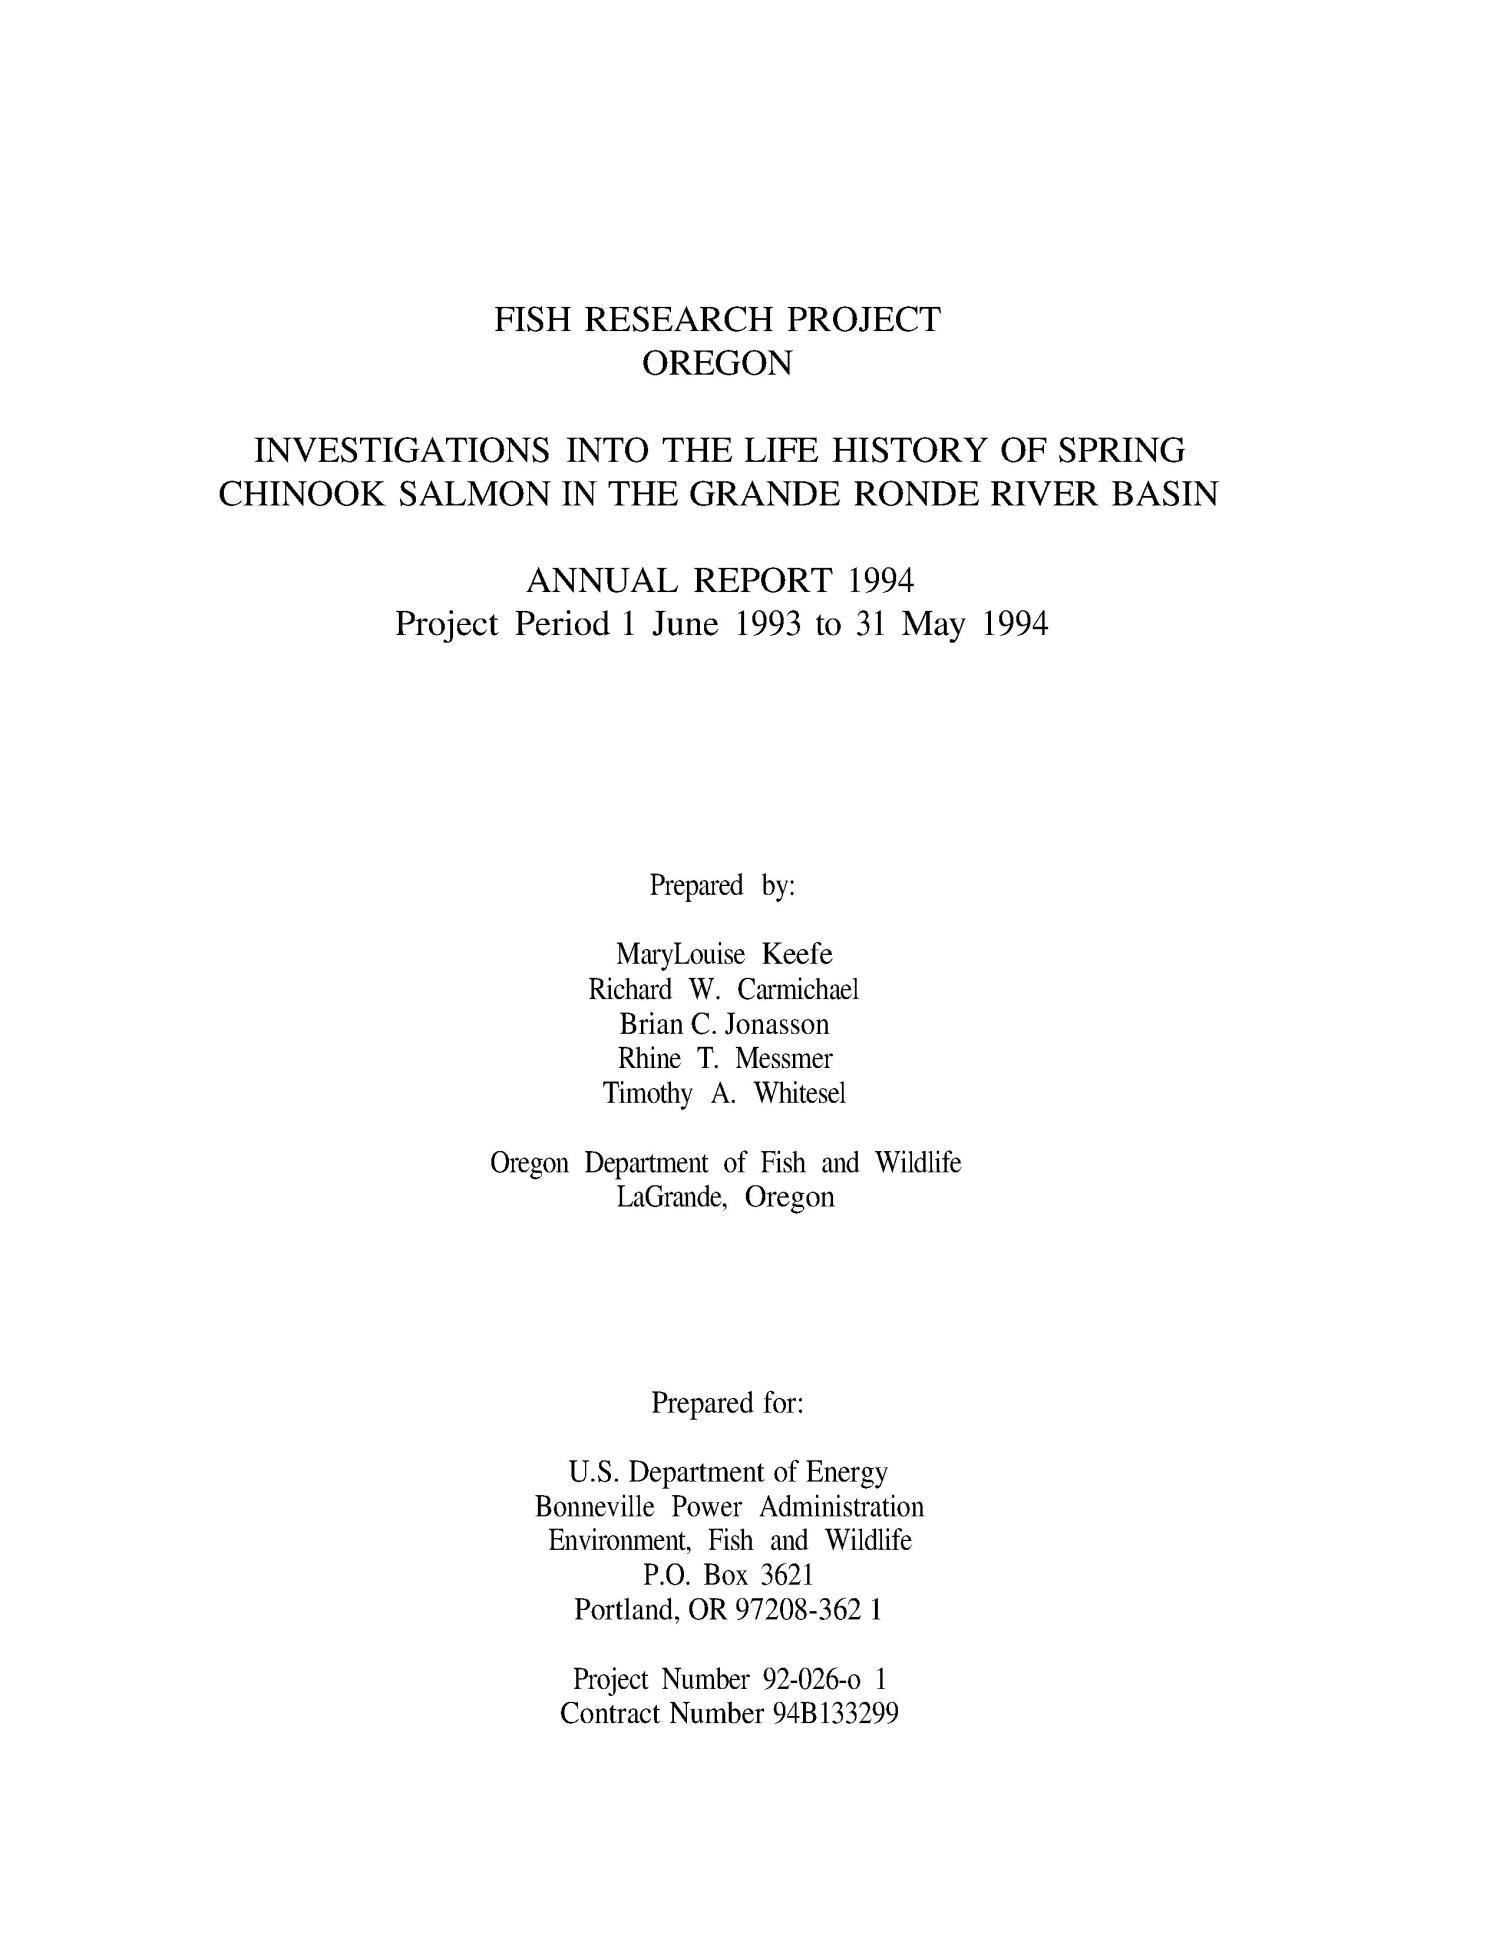 Investigations into the [Early] Life History of Spring Chinook Salmon in the Grande Ronde River Basin : Fish Research Project, Oregon : Annual Report 1994 : Project Period 1 June 1993 to 31 May 1994.                                                                                                      [Sequence #]: 3 of 41